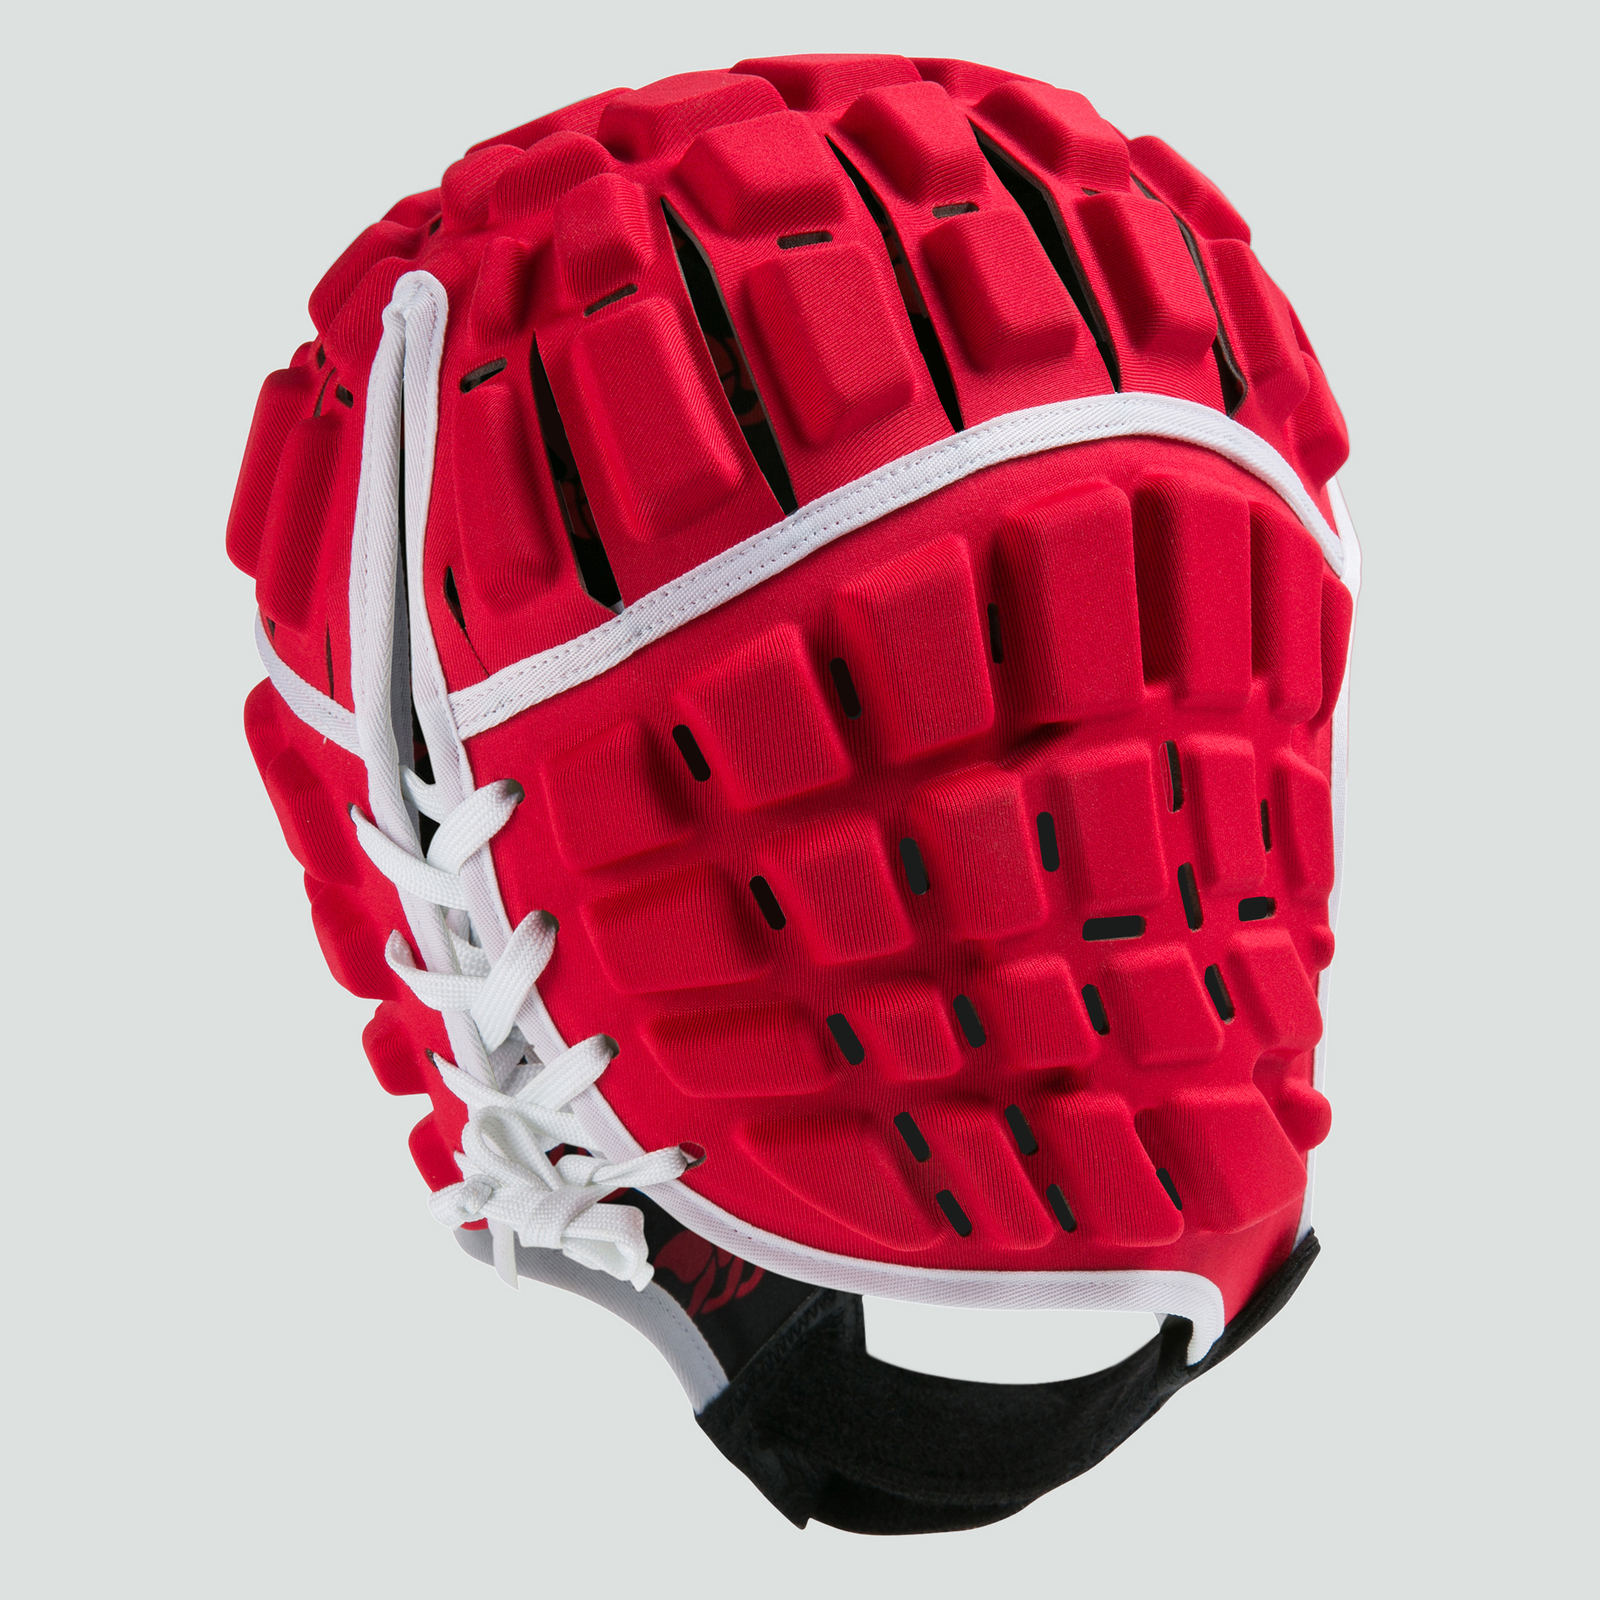 Reinforcer Headguard Adults - XL (Red) image